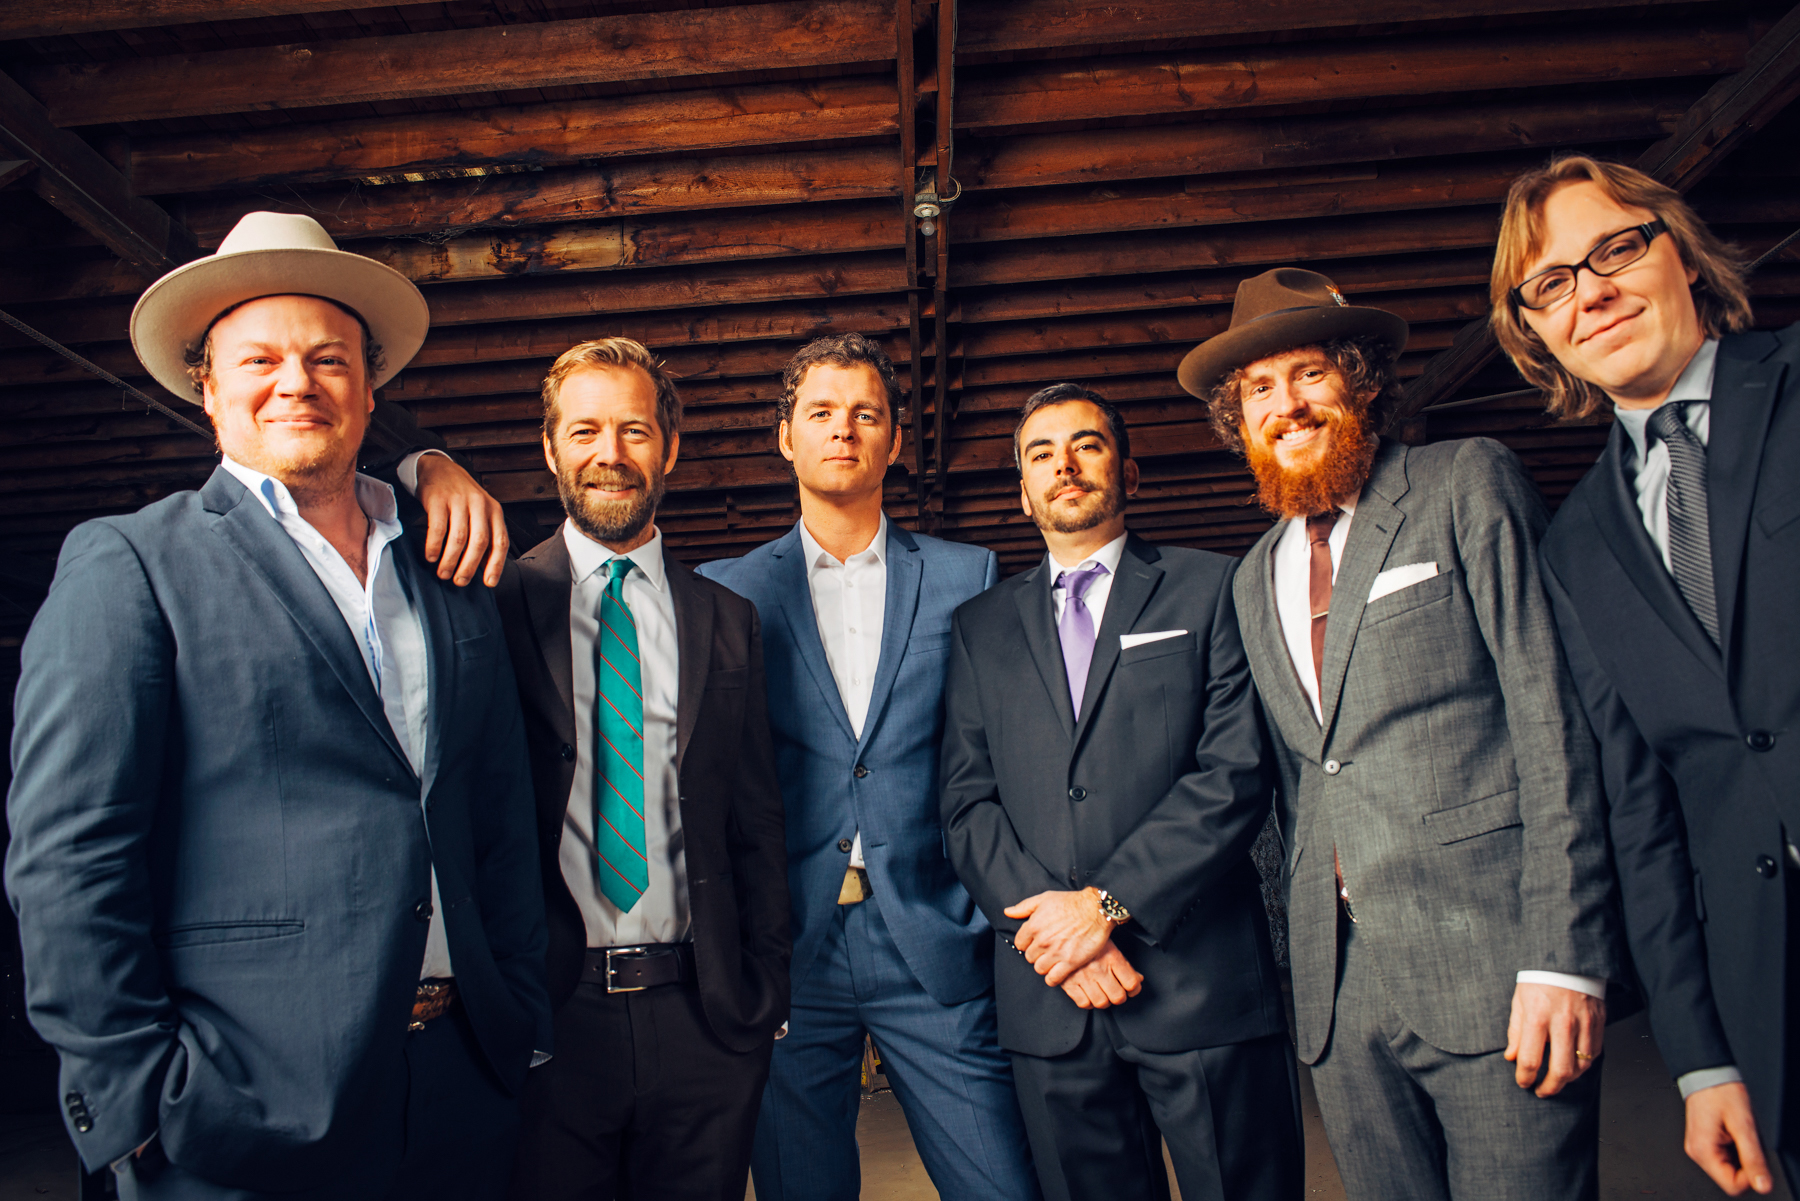 Turn Up the Radio: A Conversation with Woody Platt of Steep Canyon Rangers